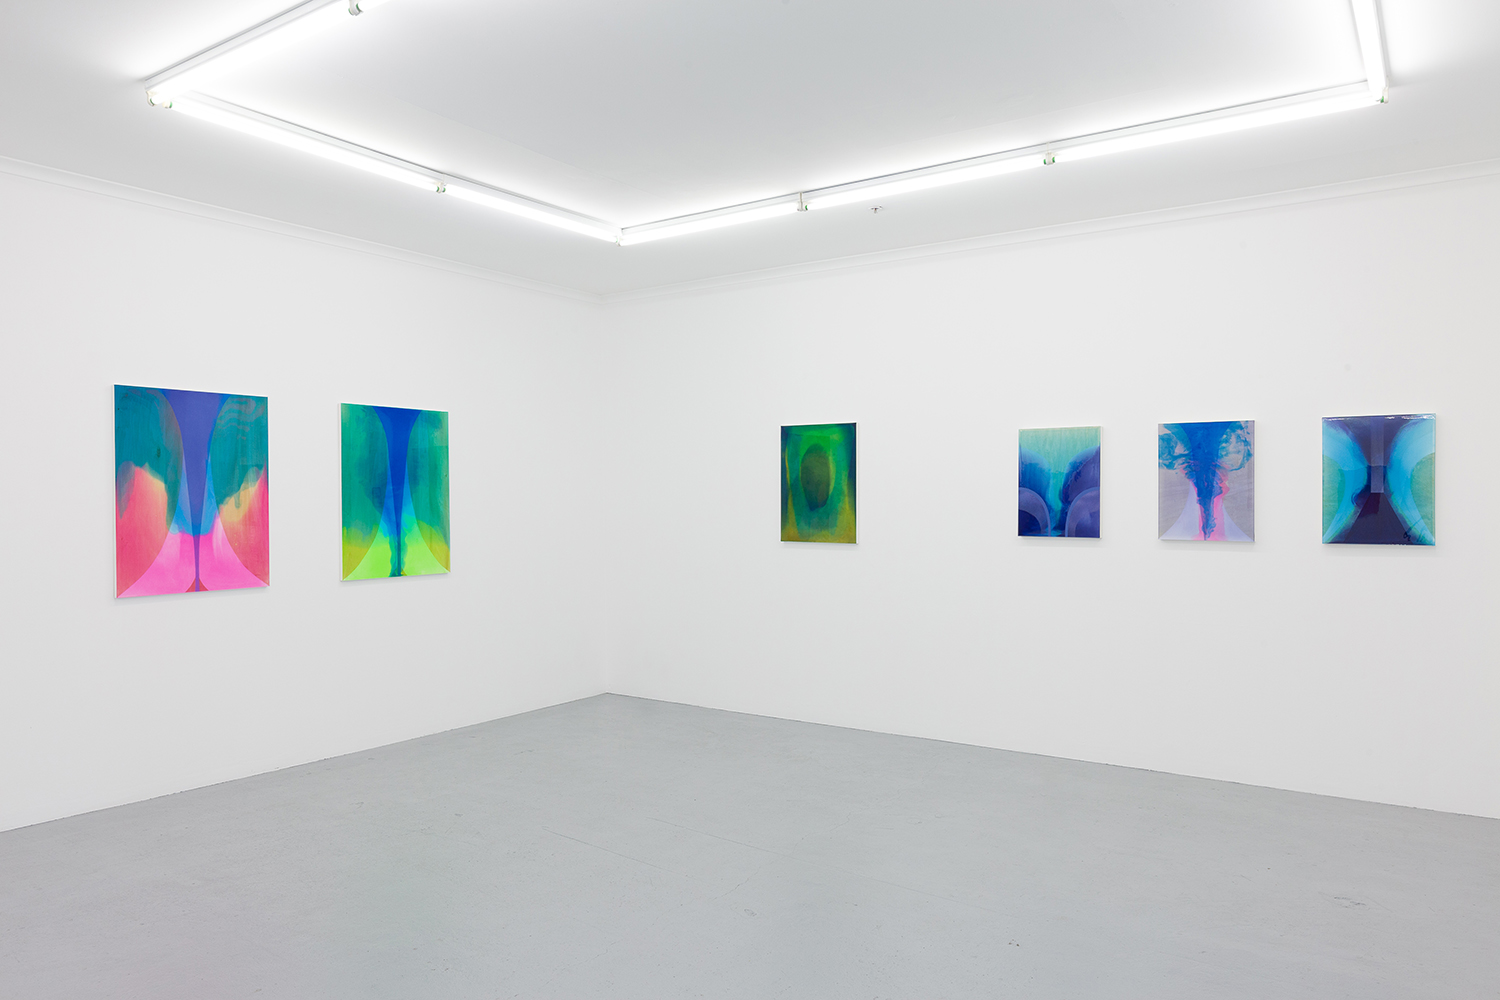 Rochelle Haley, installation view of Interval solo exhibition, Galerie pompom, 2019, courtesy the artist. Photo: Docqment